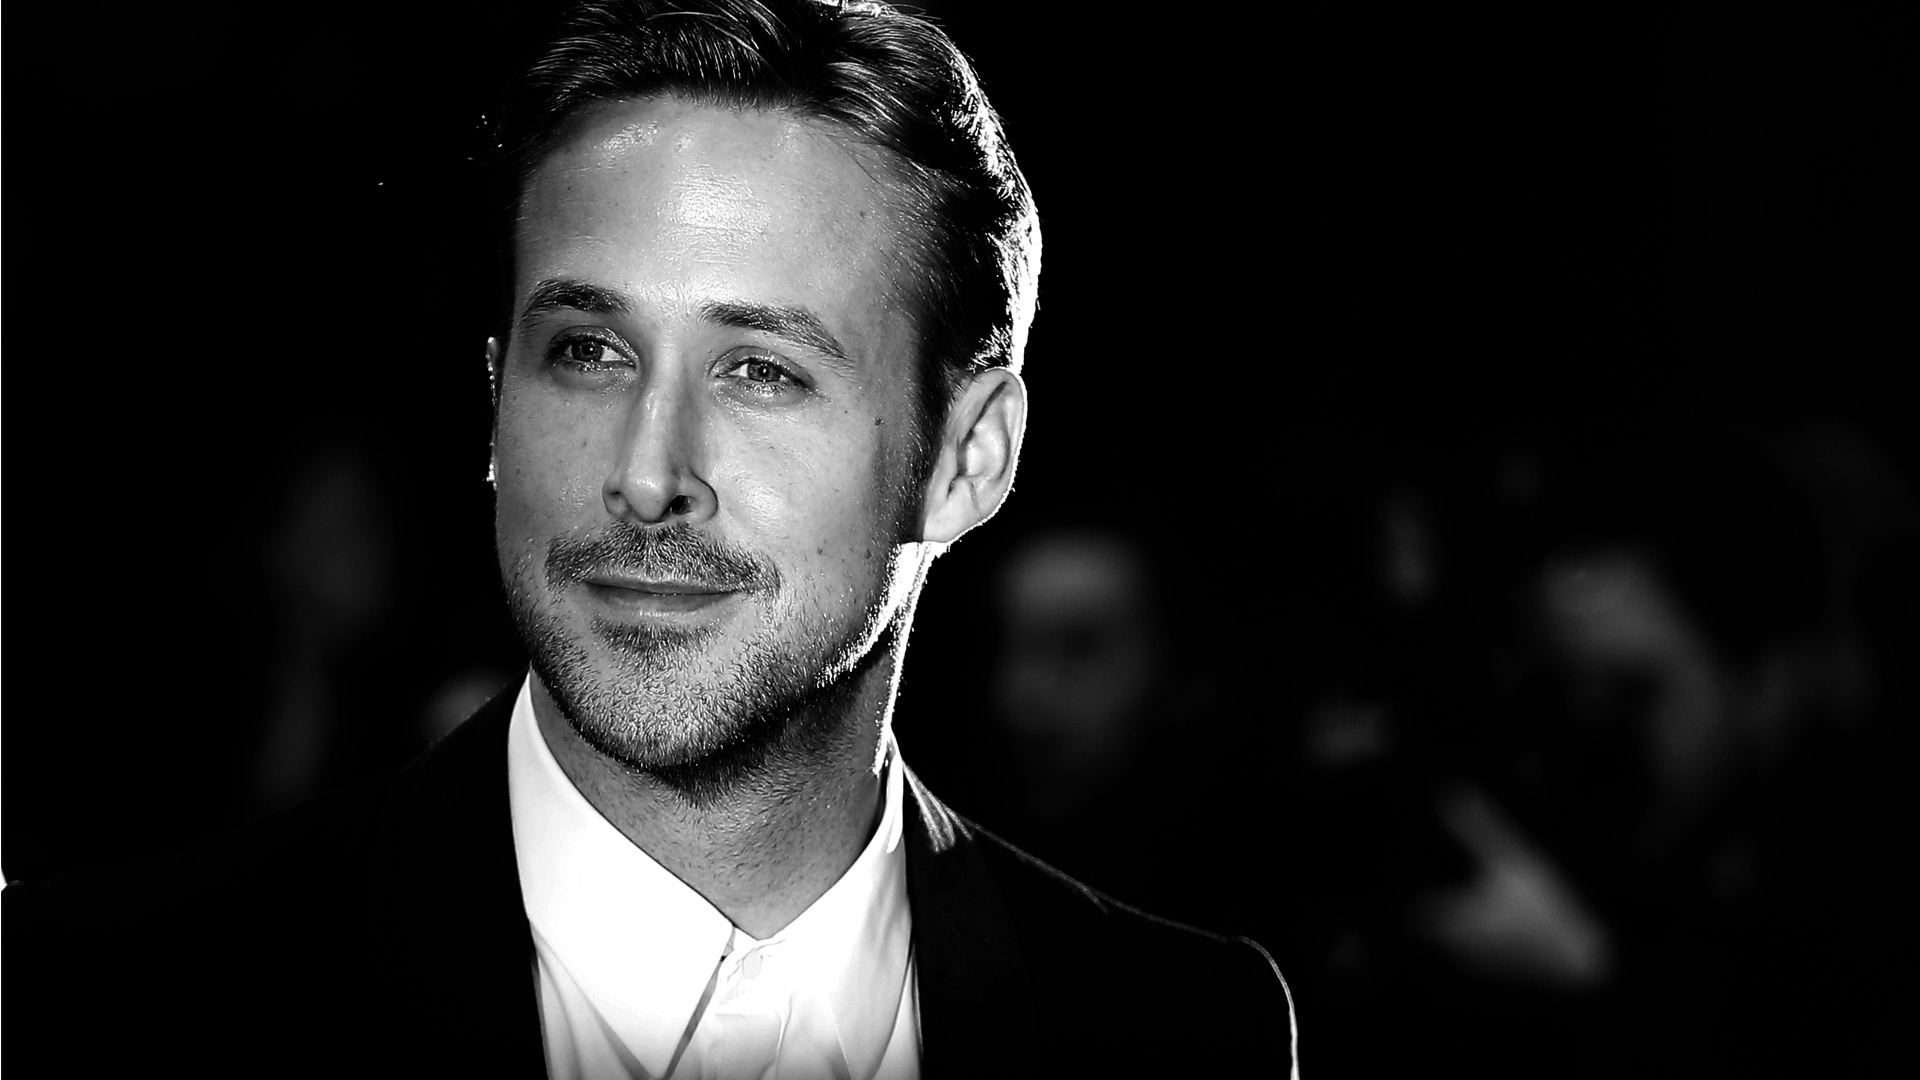 Ryan Gosling Wallpapers High Resolution and Quality Download 1920x1080